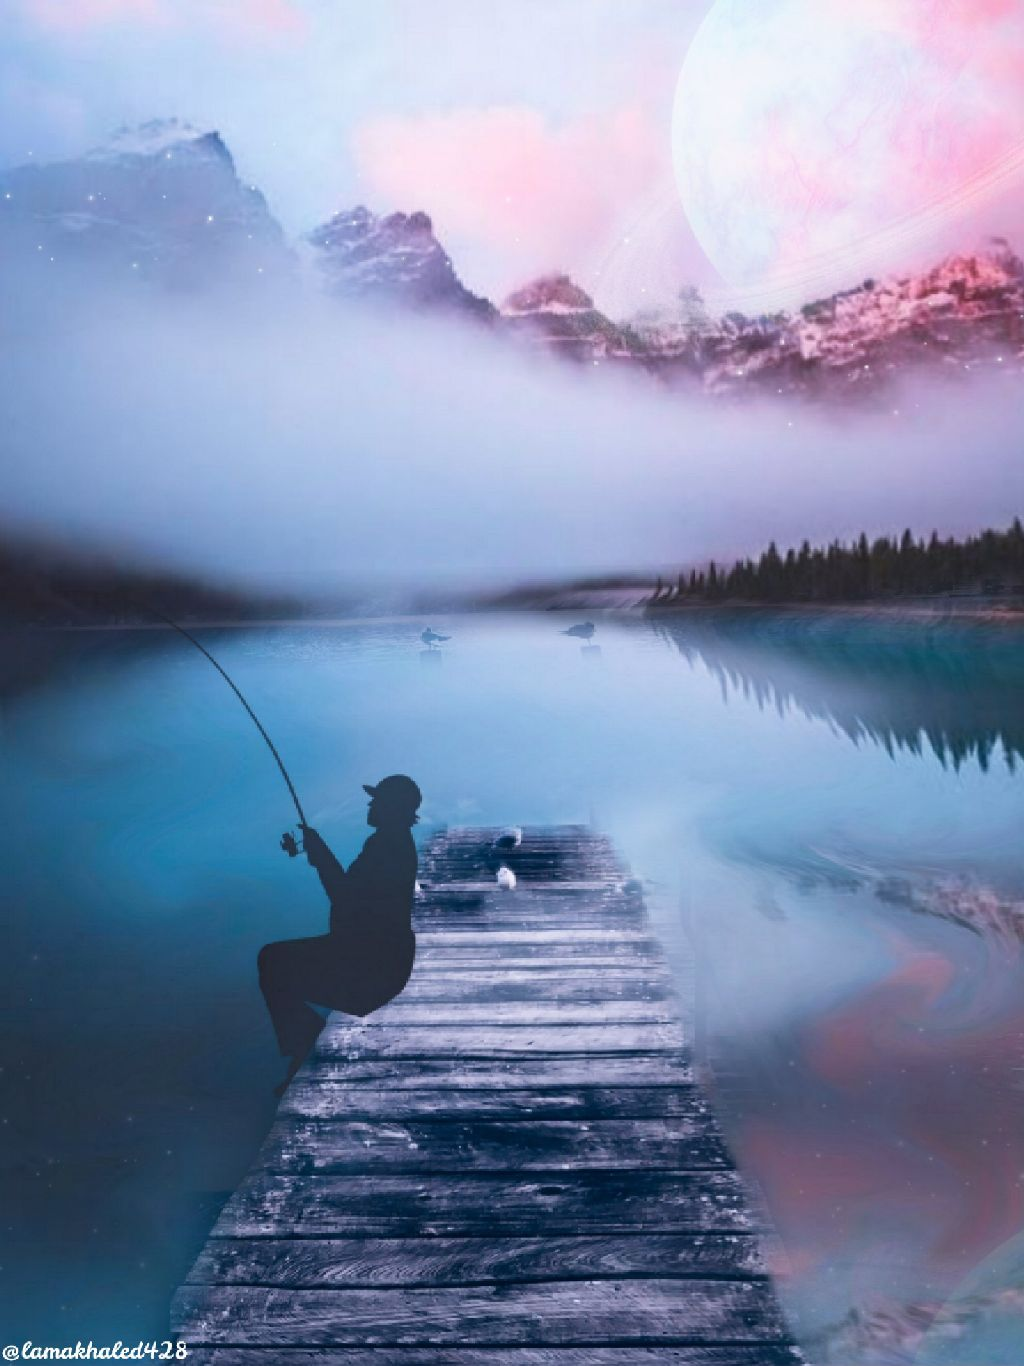 #freetoedit #fishingman #mountain #Lake #clouds #bridge #saturn #planet #trees #reflection #setdown #bird #sky #blue #pink #edit #myedit #remixit #remix #hopeyoulikeit 💙💜☺️